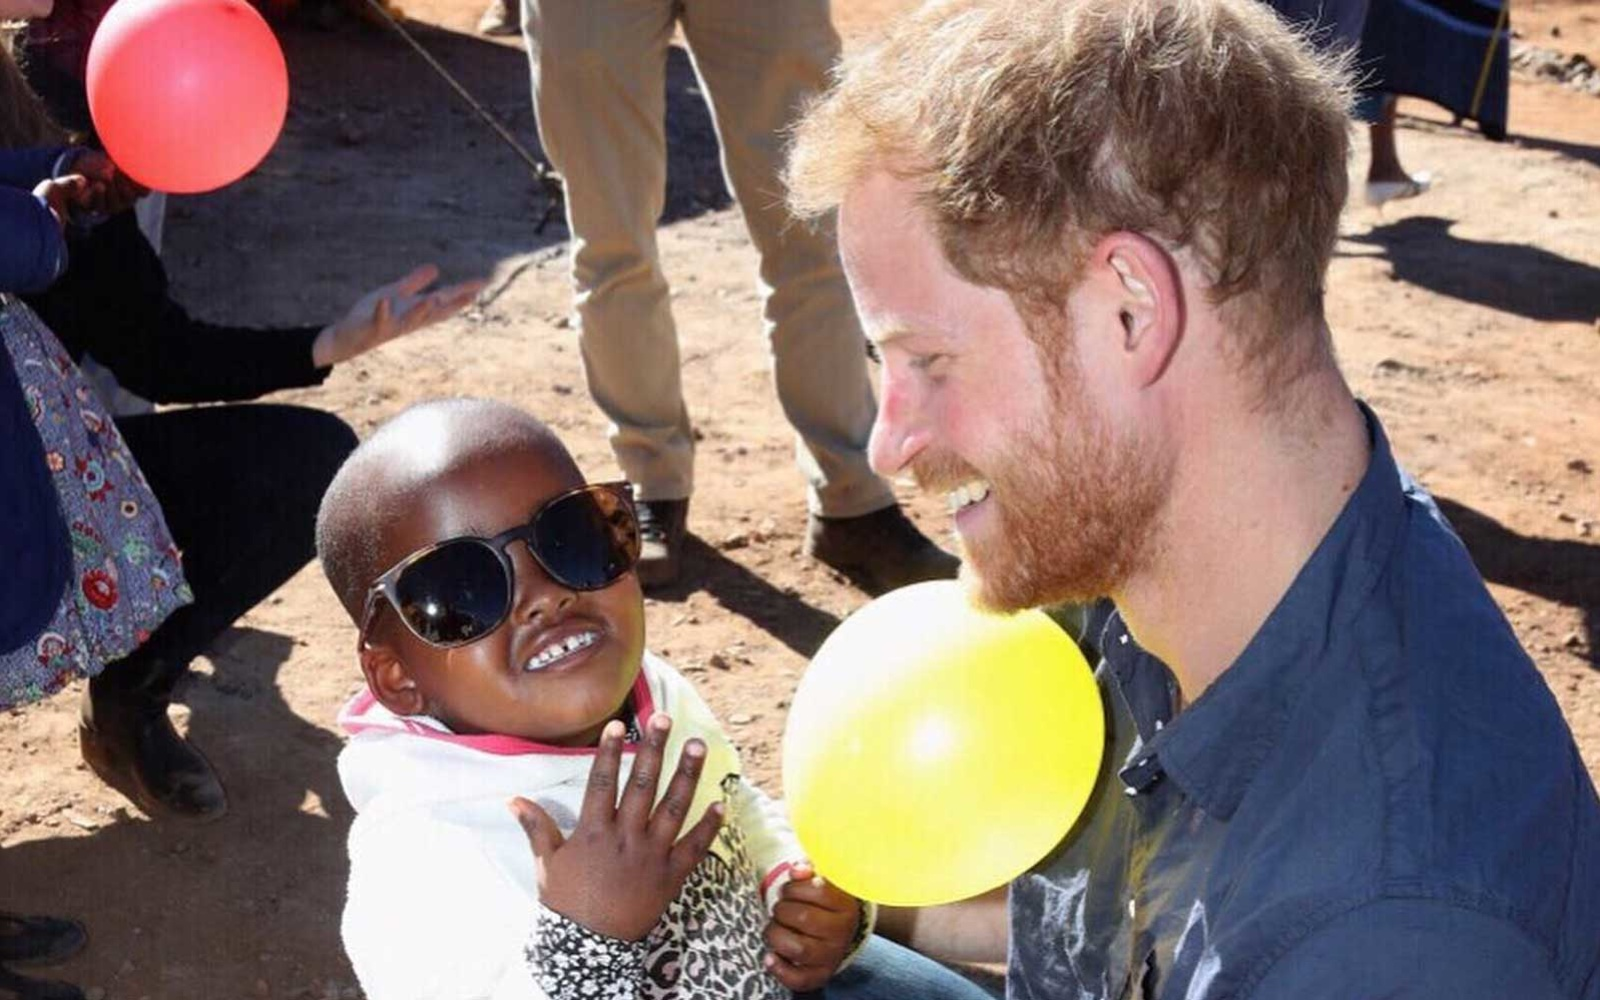 Prince Harry visiting the Sentebale projects in Lesotho